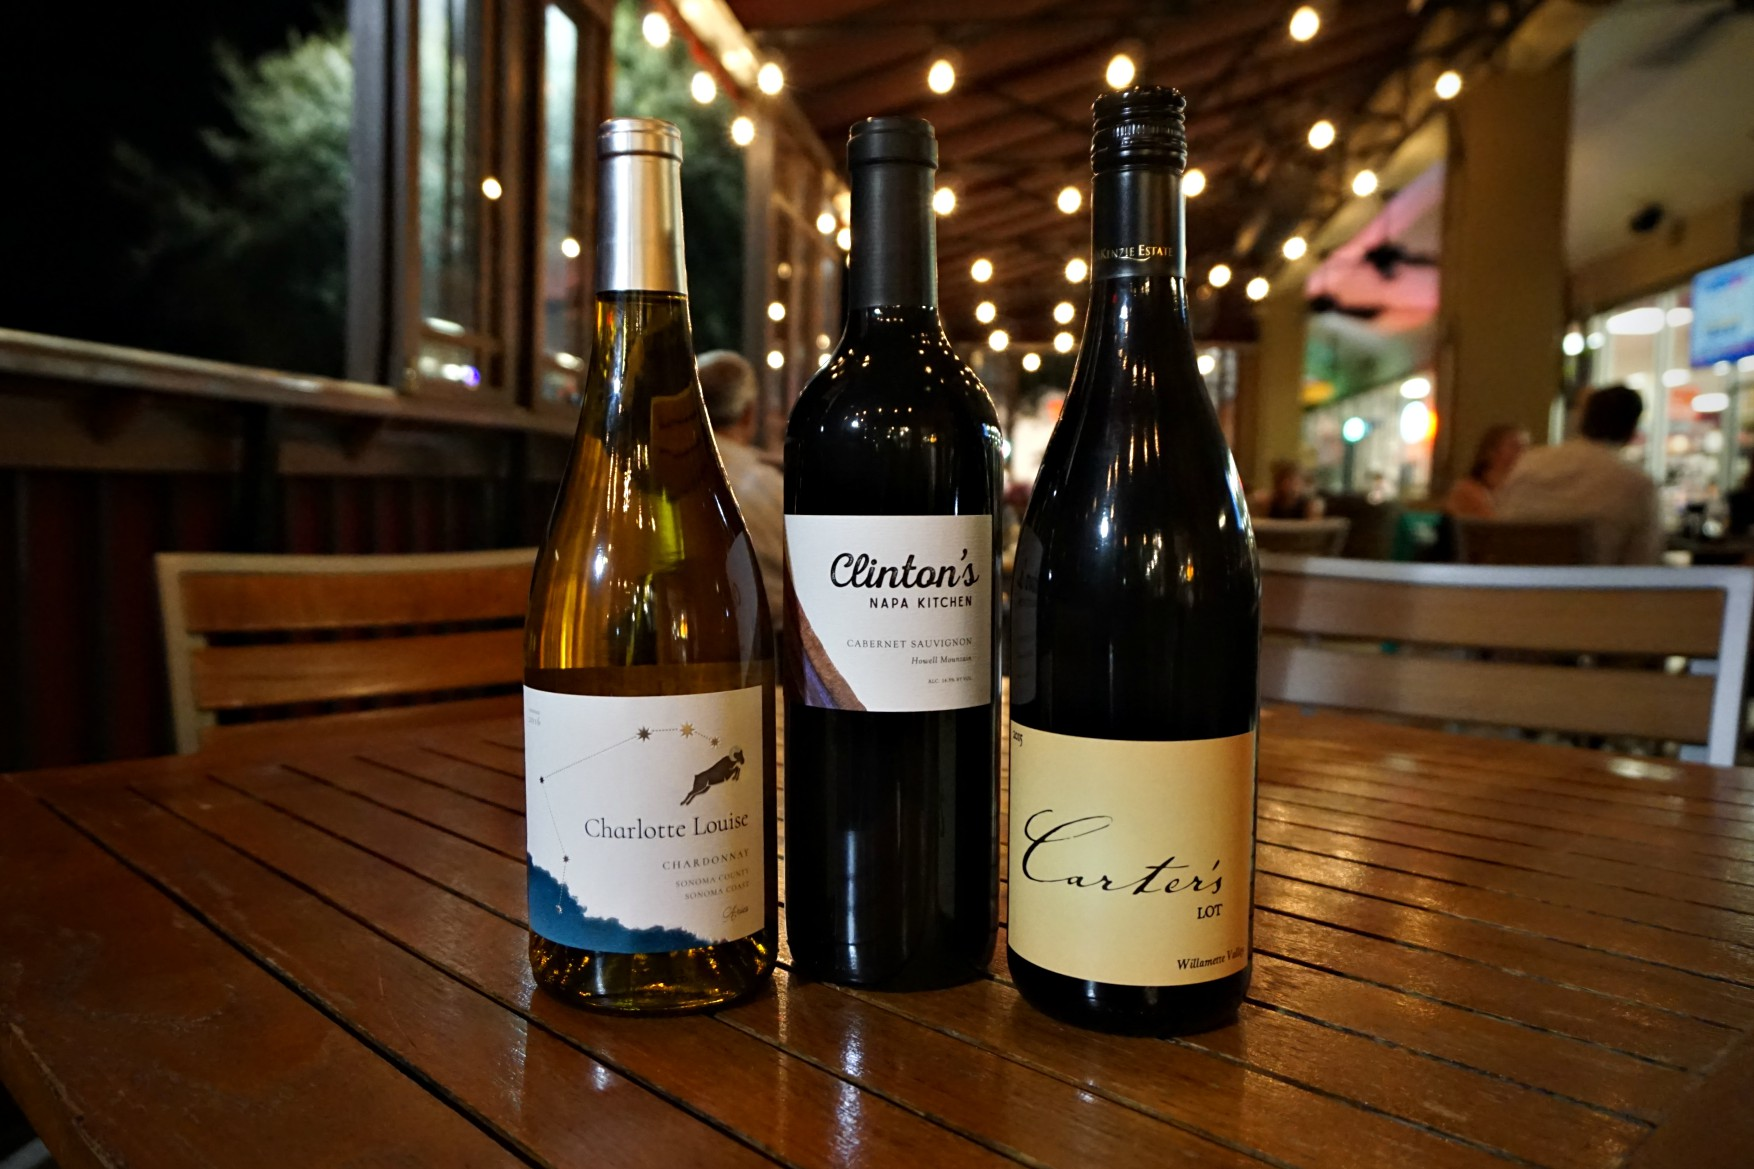 Our own private label wines, named for members of Chan's beloved family: Charlotte Louise Chardonnay (left), Clinton's Napa Kitchen Cabernet Sauvignon (middle), Carter's Lot Pinot Noir (right).